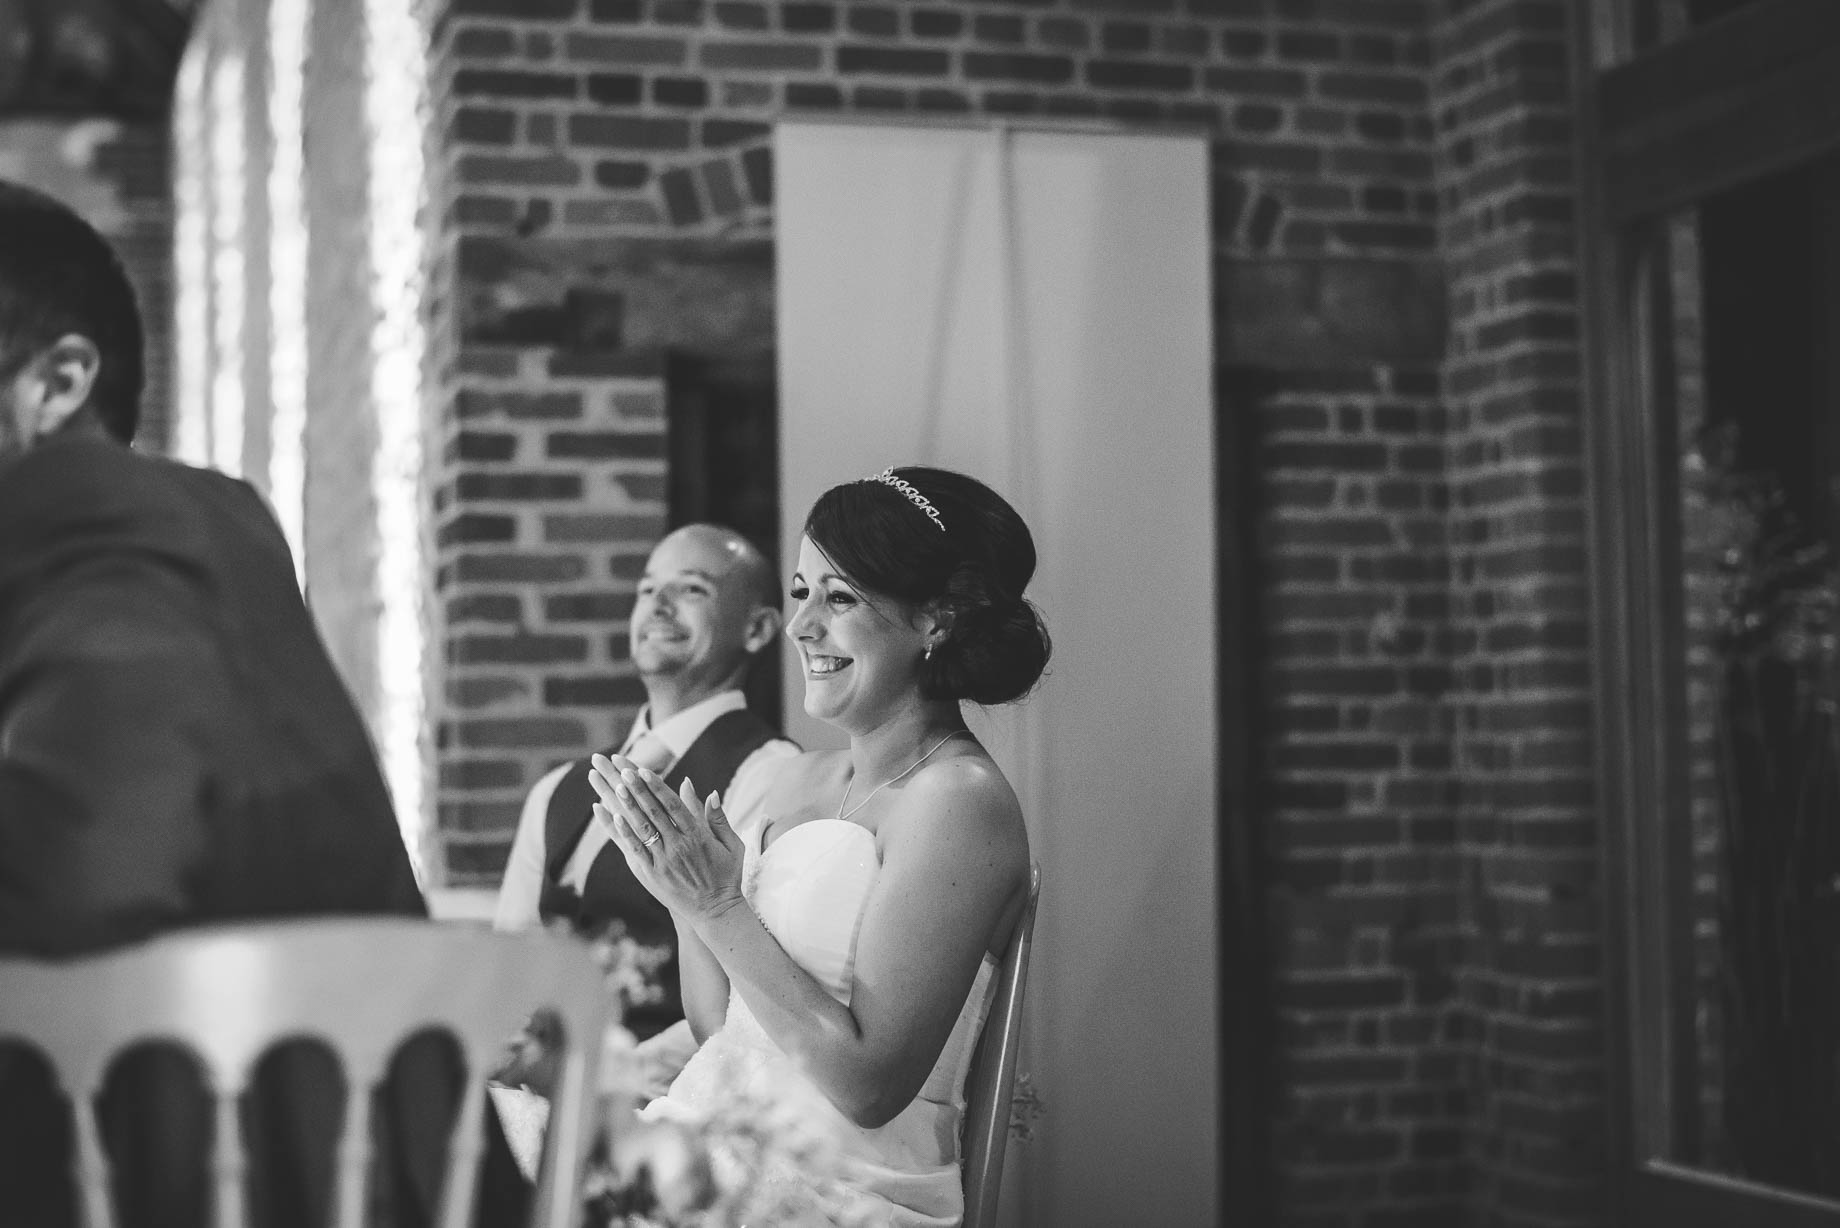 Bury Court Barn wedding photography - Guy Collier Photography - Karen and John (131 of 166)